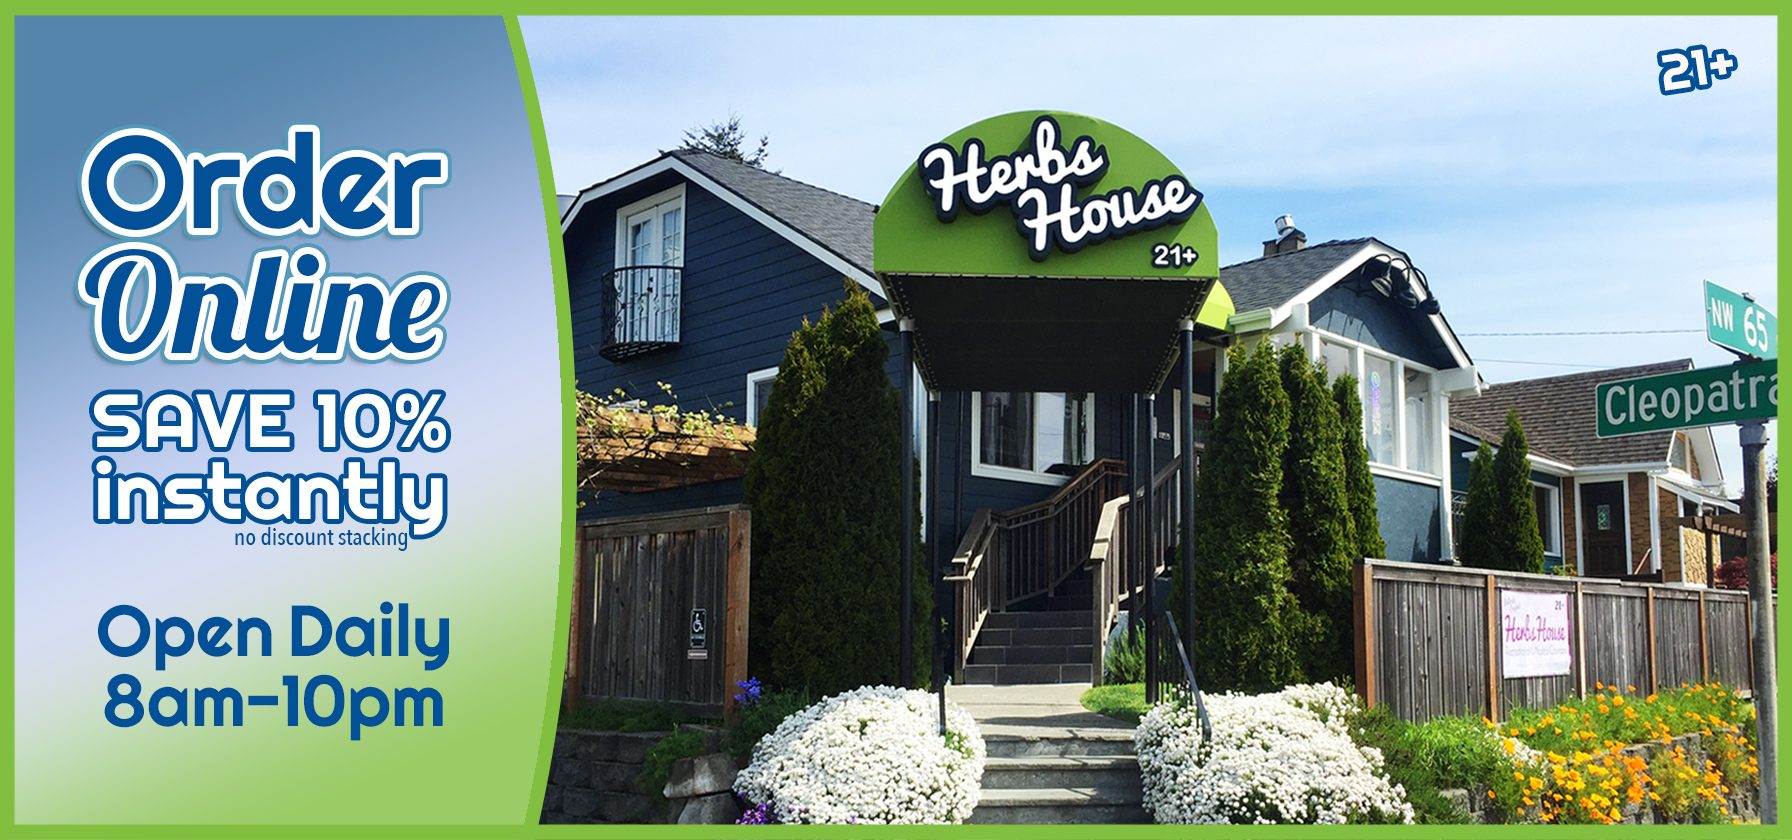 Herbs House Welcome Open 8am-10pm image